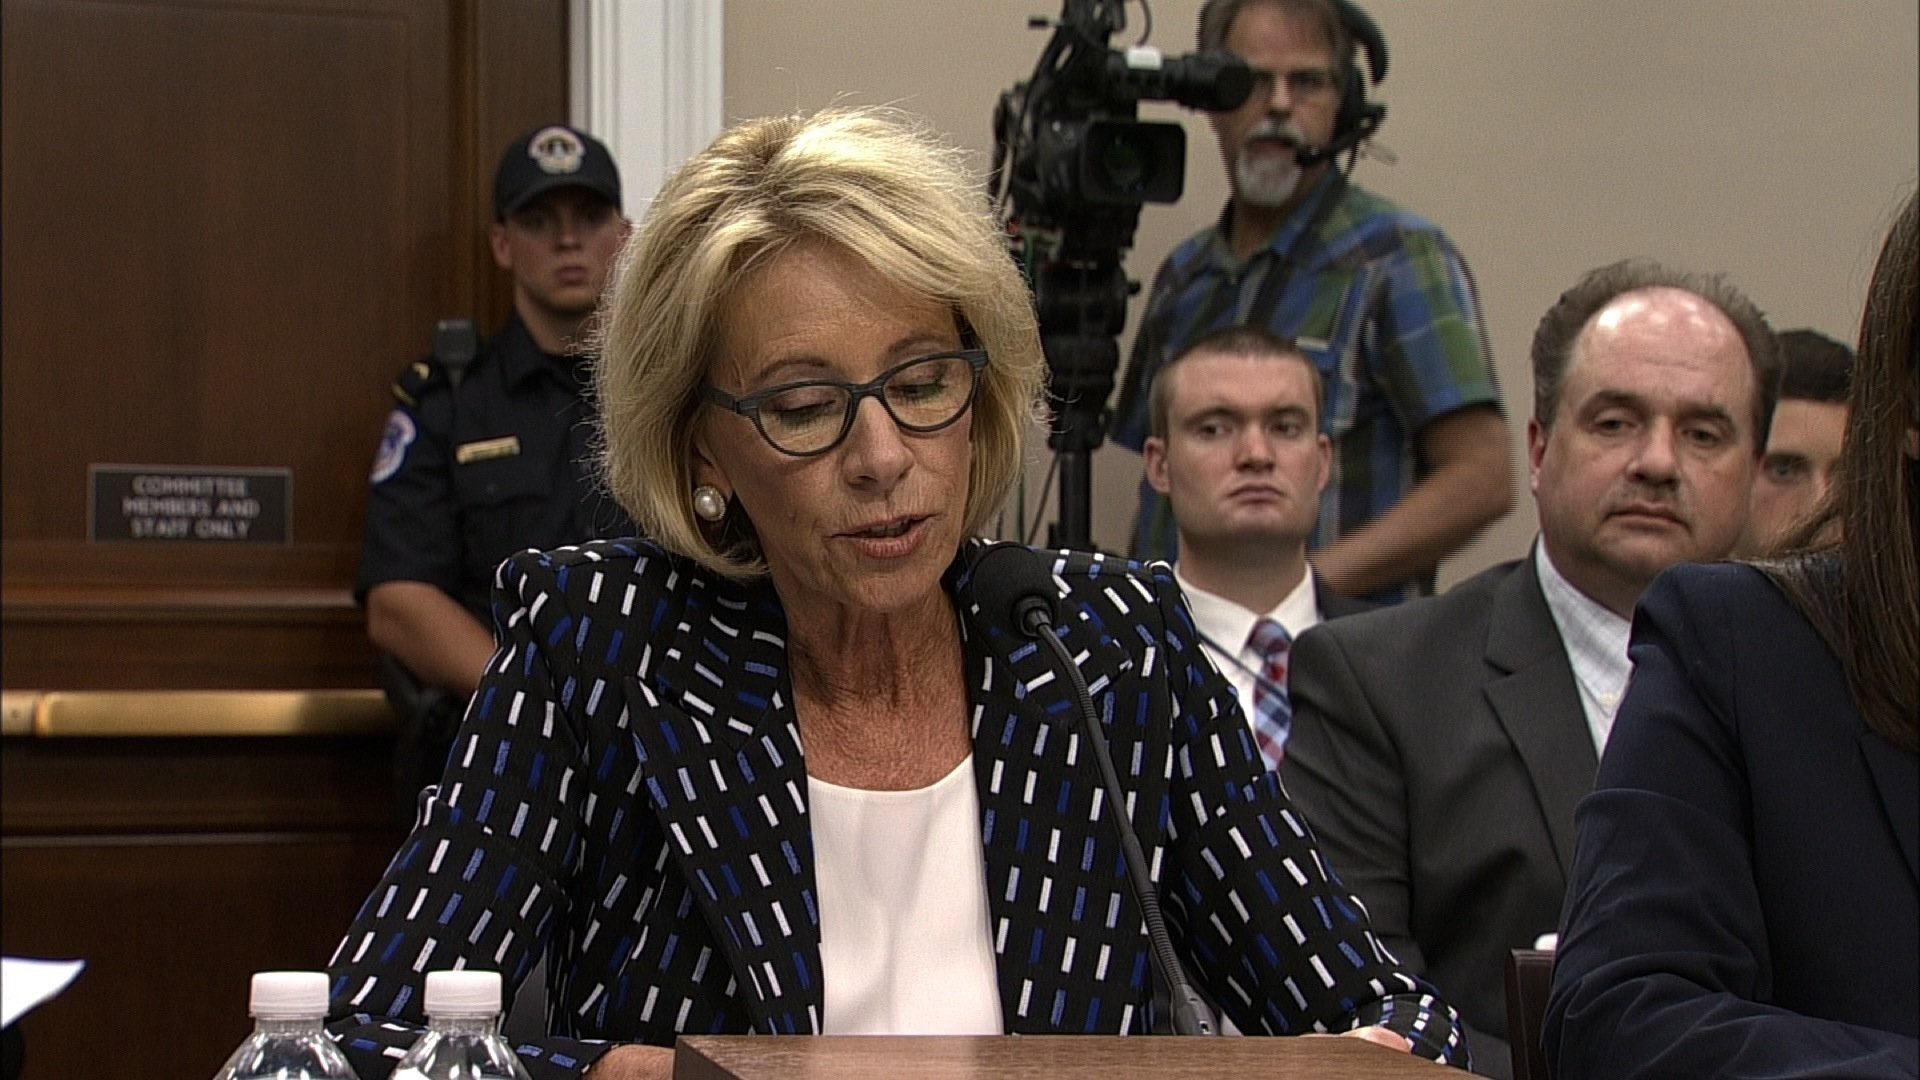 Connecticut Attorney General George Jepsen is joining a lawsuit against Education Secretary Betsy DeVos. (CNN)